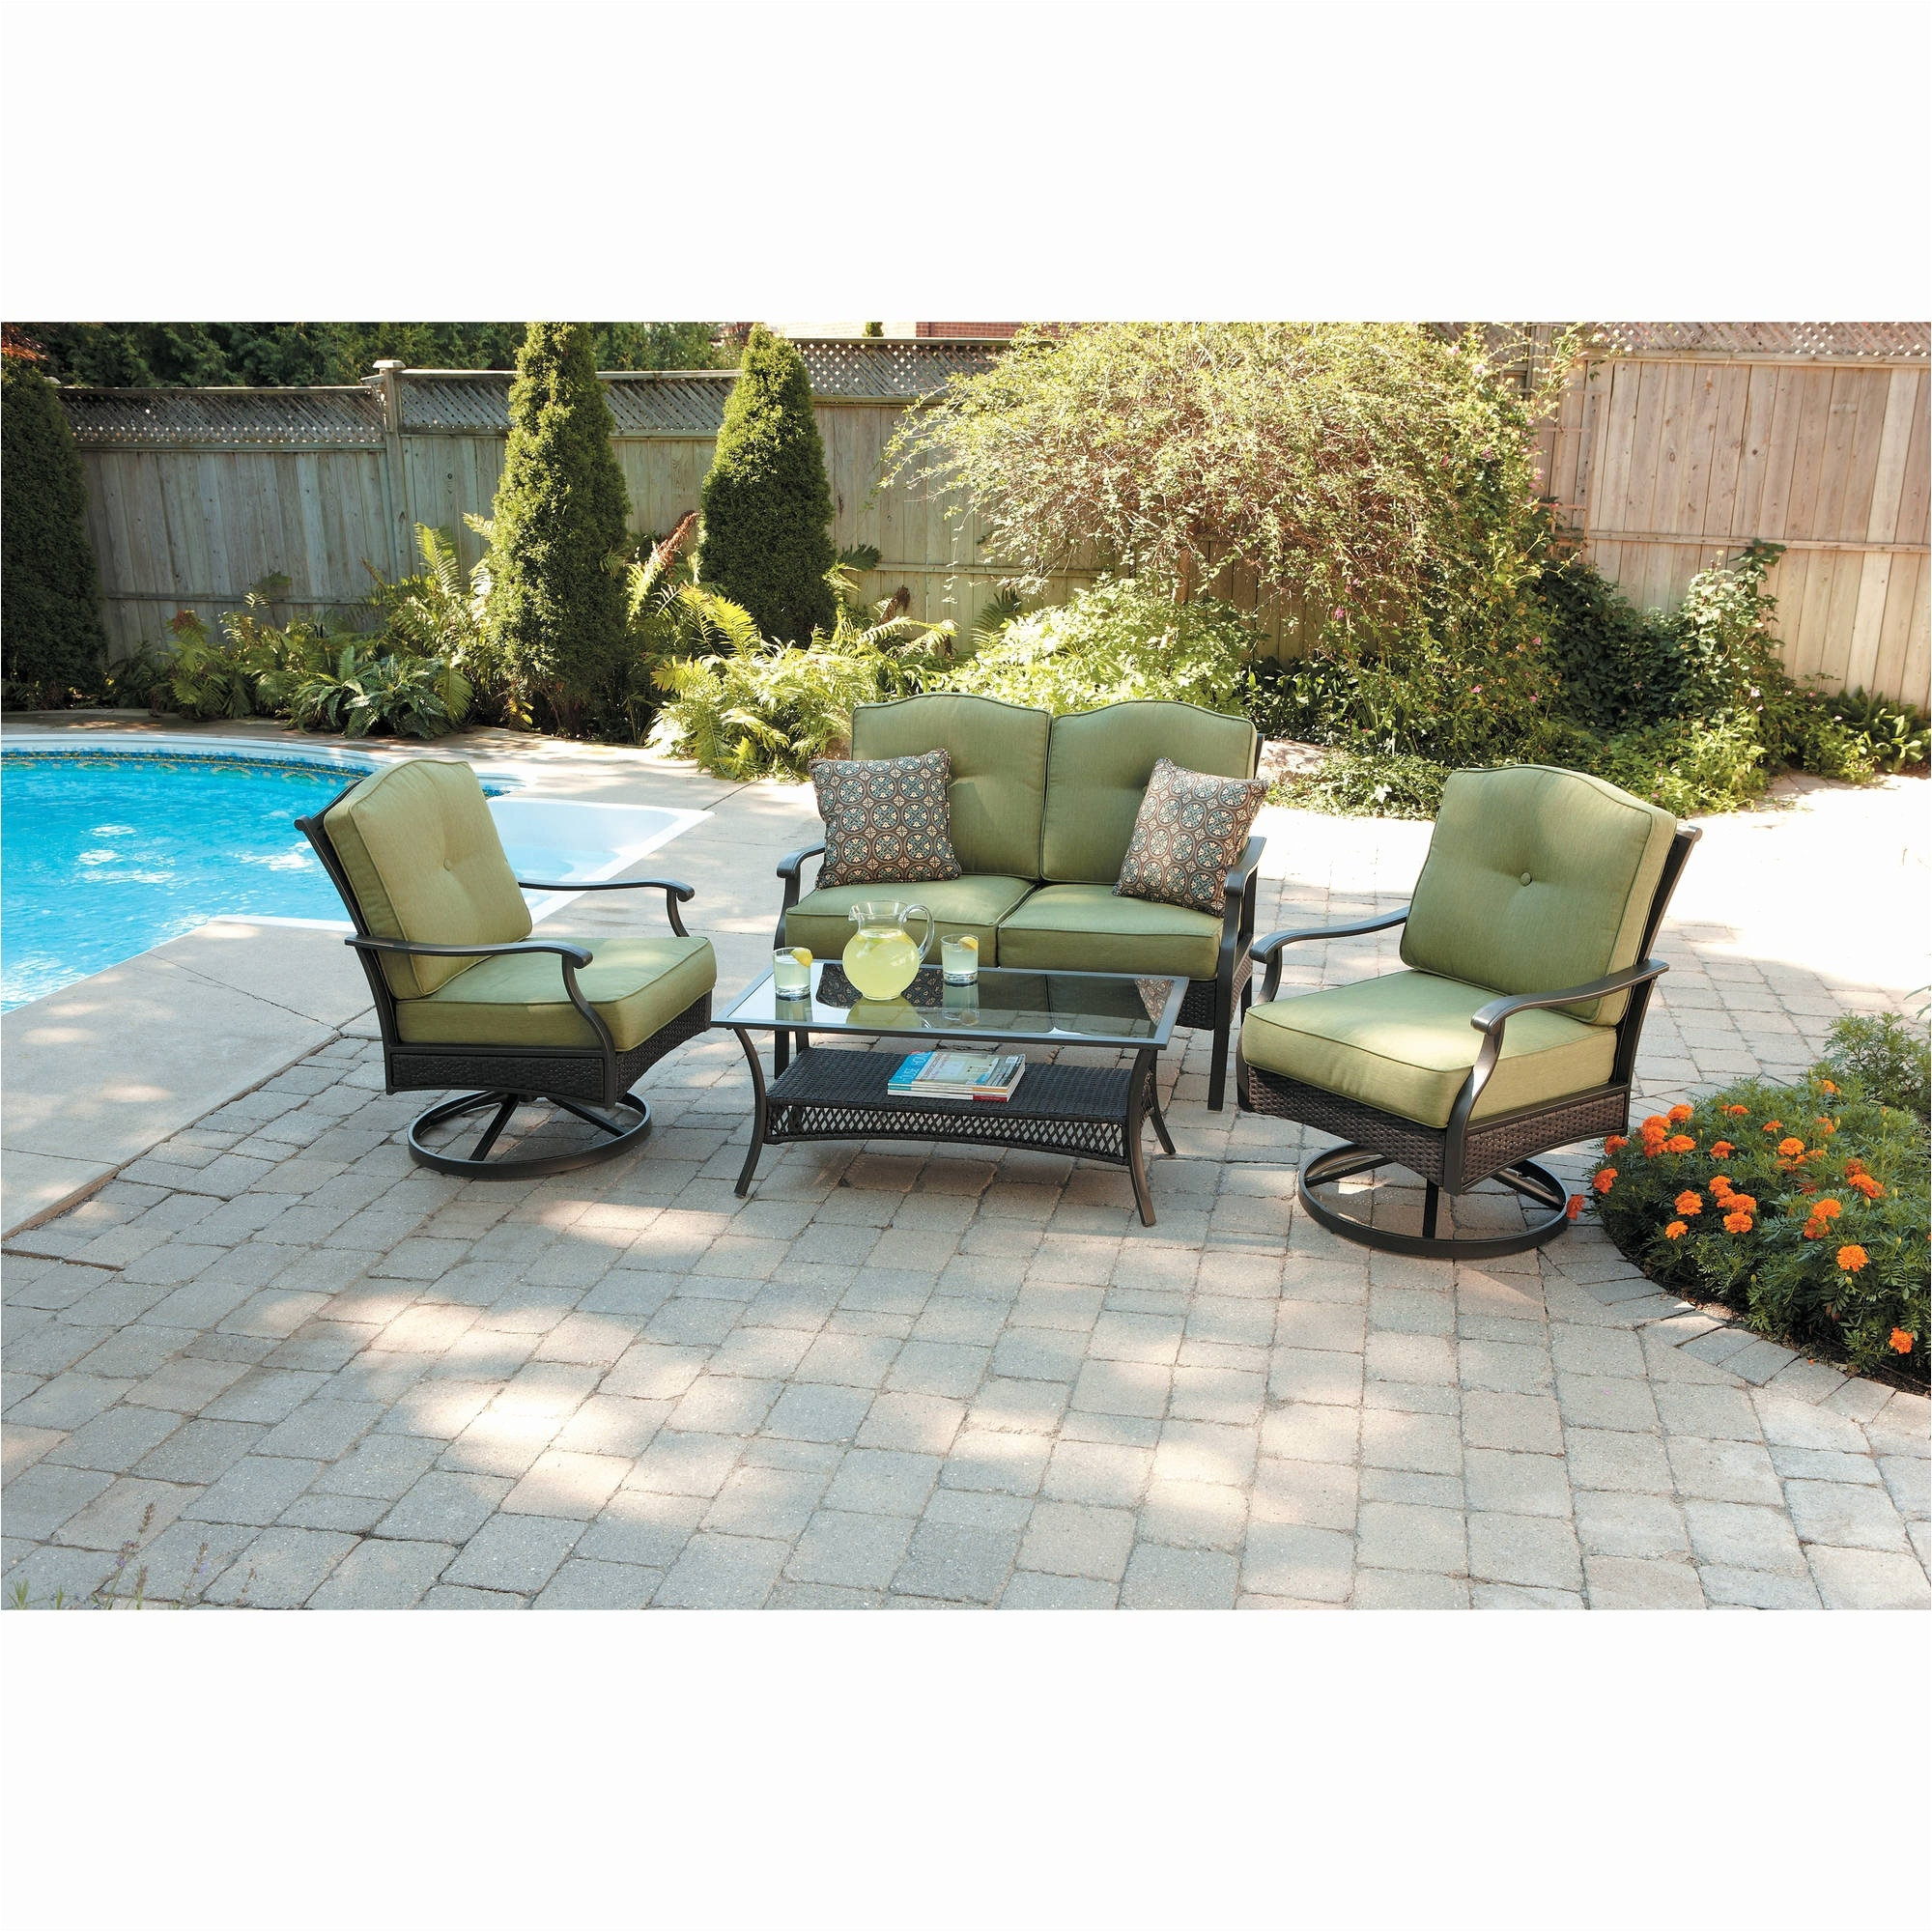 25 Luxury West Elm Outdoor Furniture Cushions Design Of ...